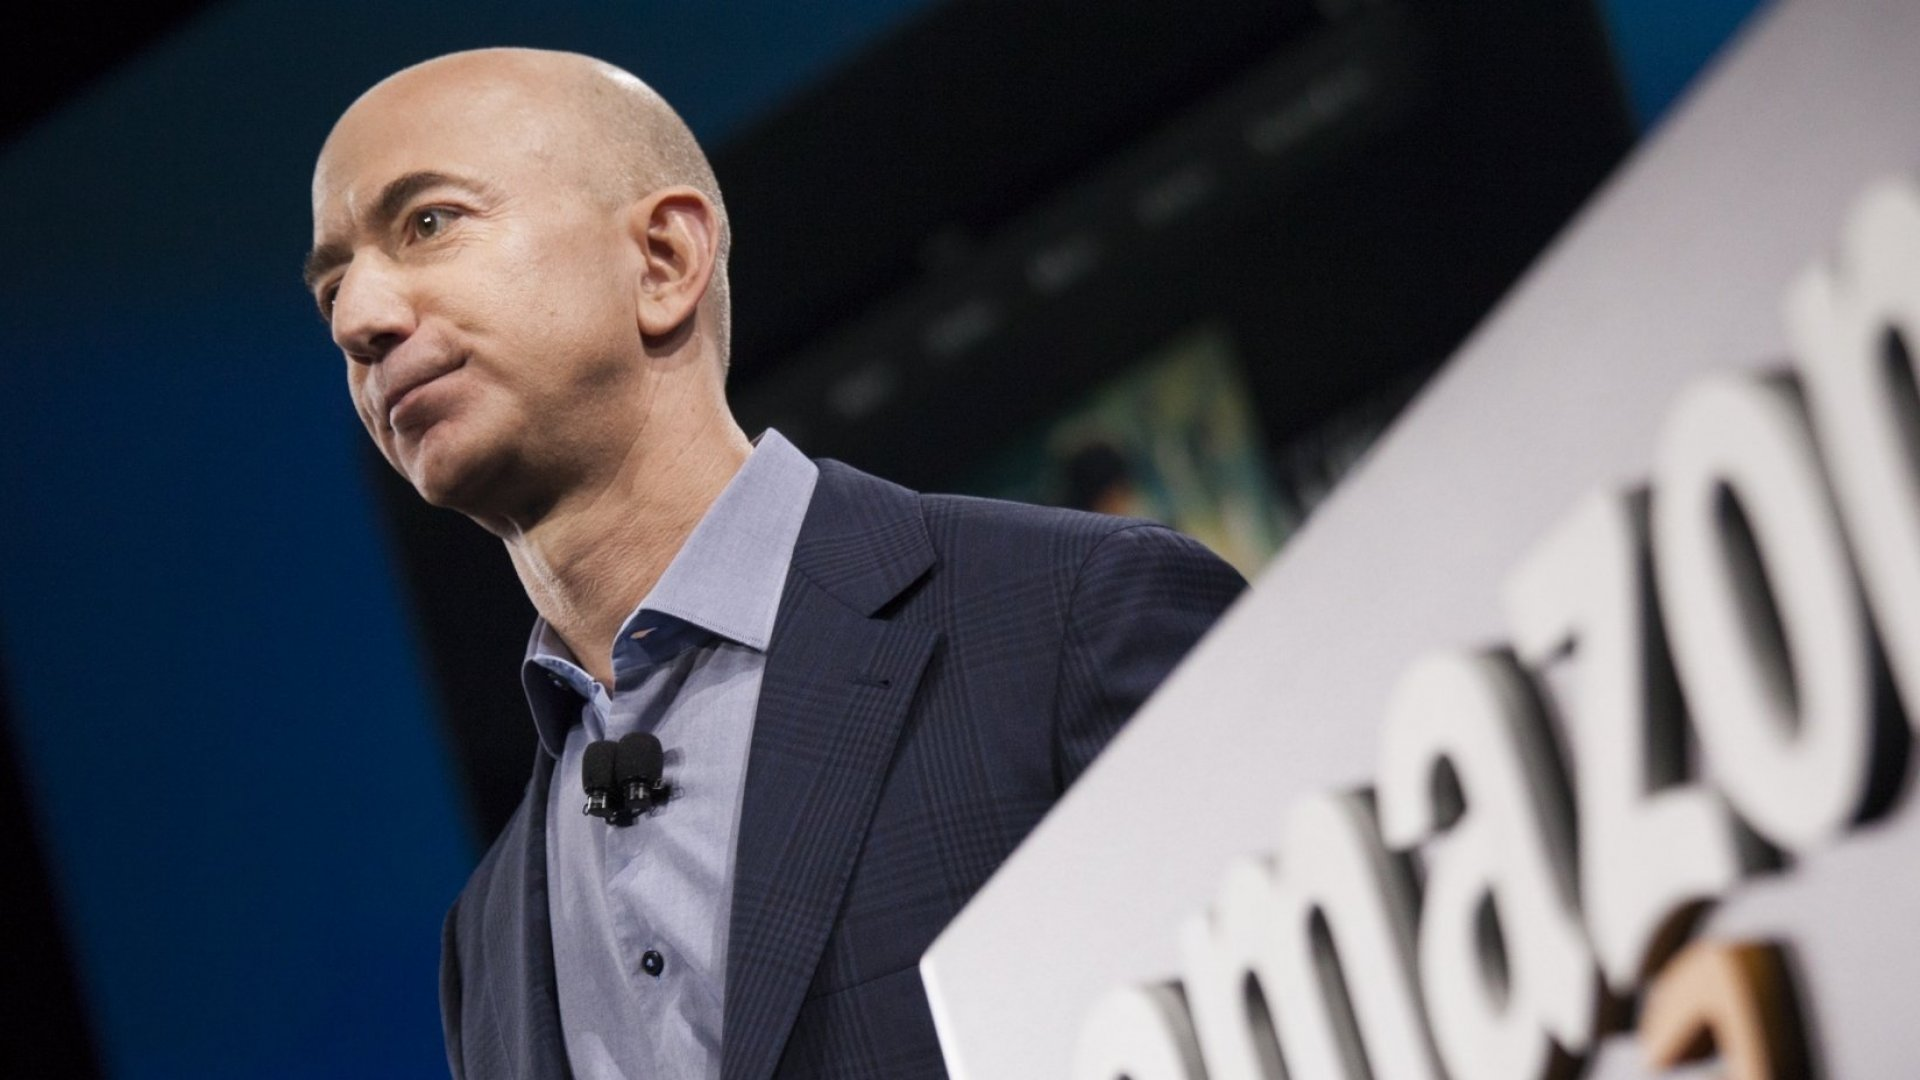 If Amazon's New Headquarters Lands in Your Town, Here's Why You May Wish It Had Landed Somewhere Else